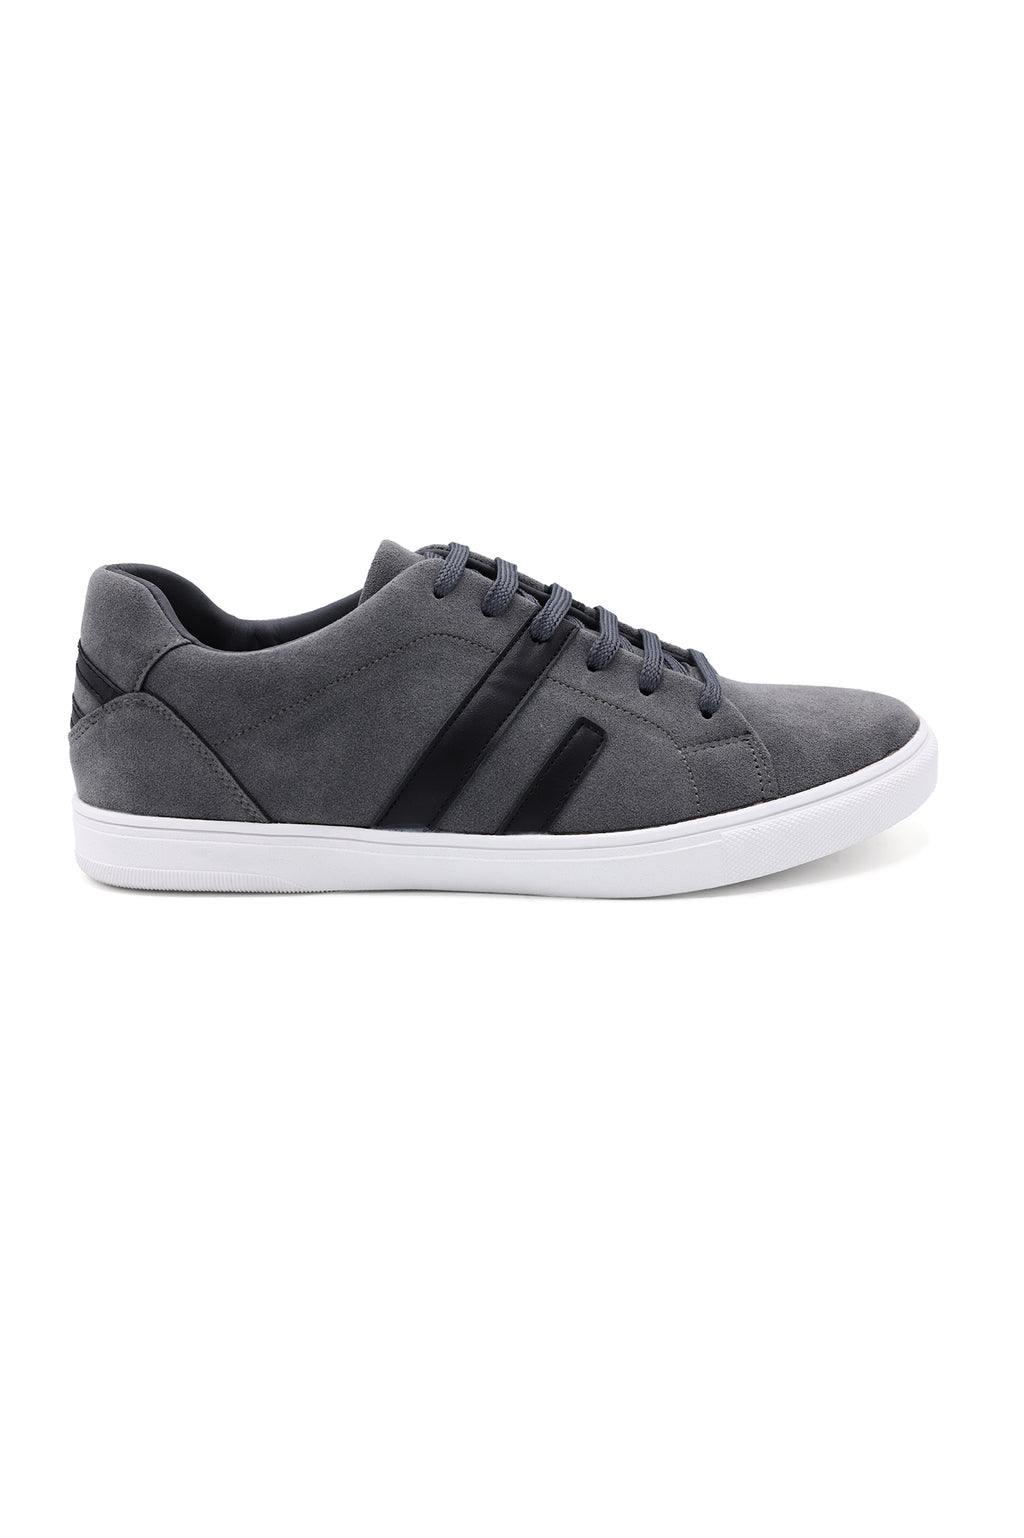 STRIPED STREET SNEAKERS-GREY AND BLACK